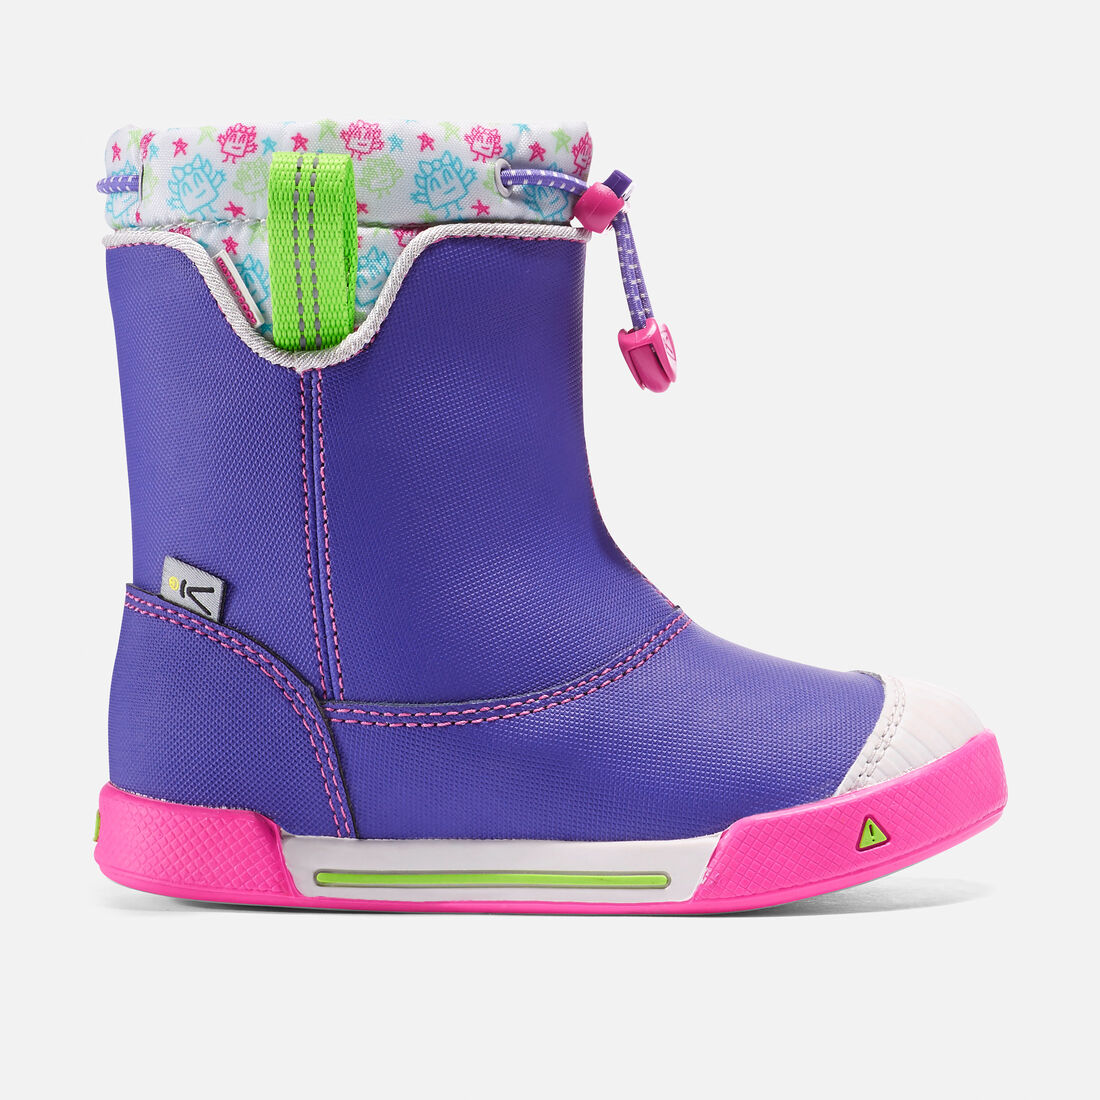 Little Kids' Encanto Waterproof Boot in Liberty/Very Berry - large view.